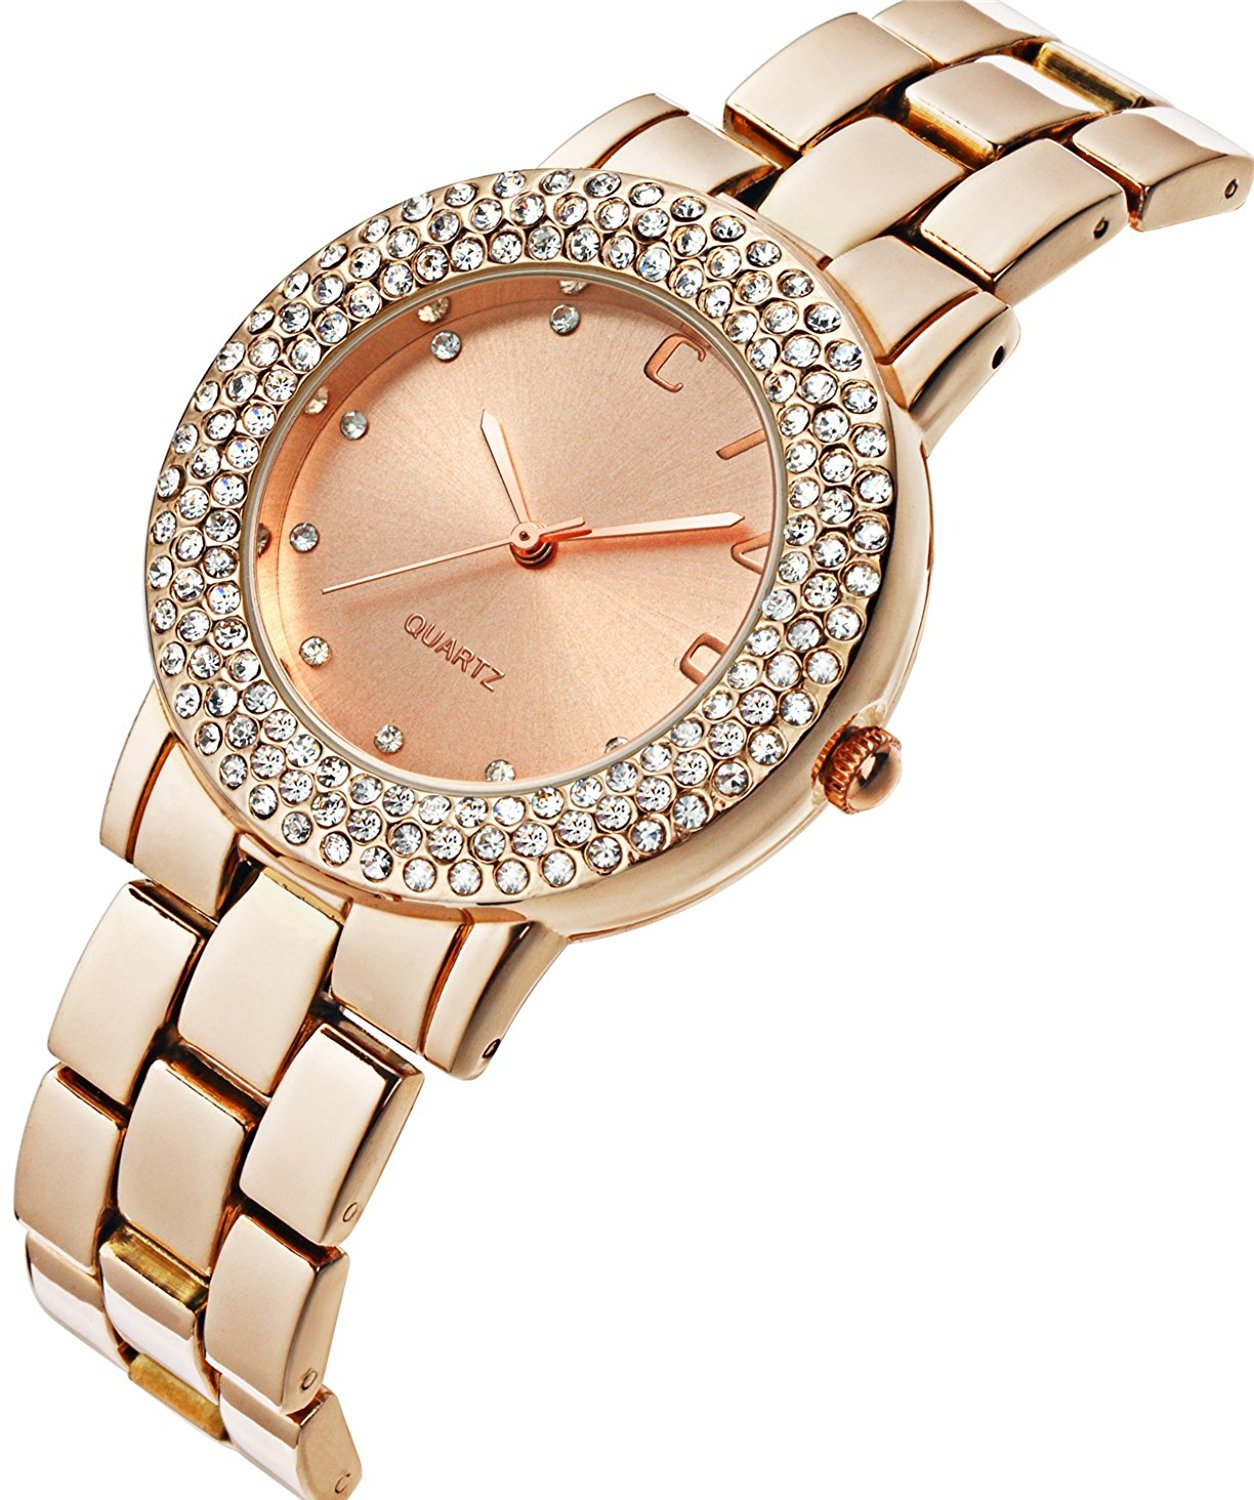 CIVO Women's Rose Golden Stainless Steel Band Wrist Watch Lady Fashion Business Casual Dress Bracelet: CIVO